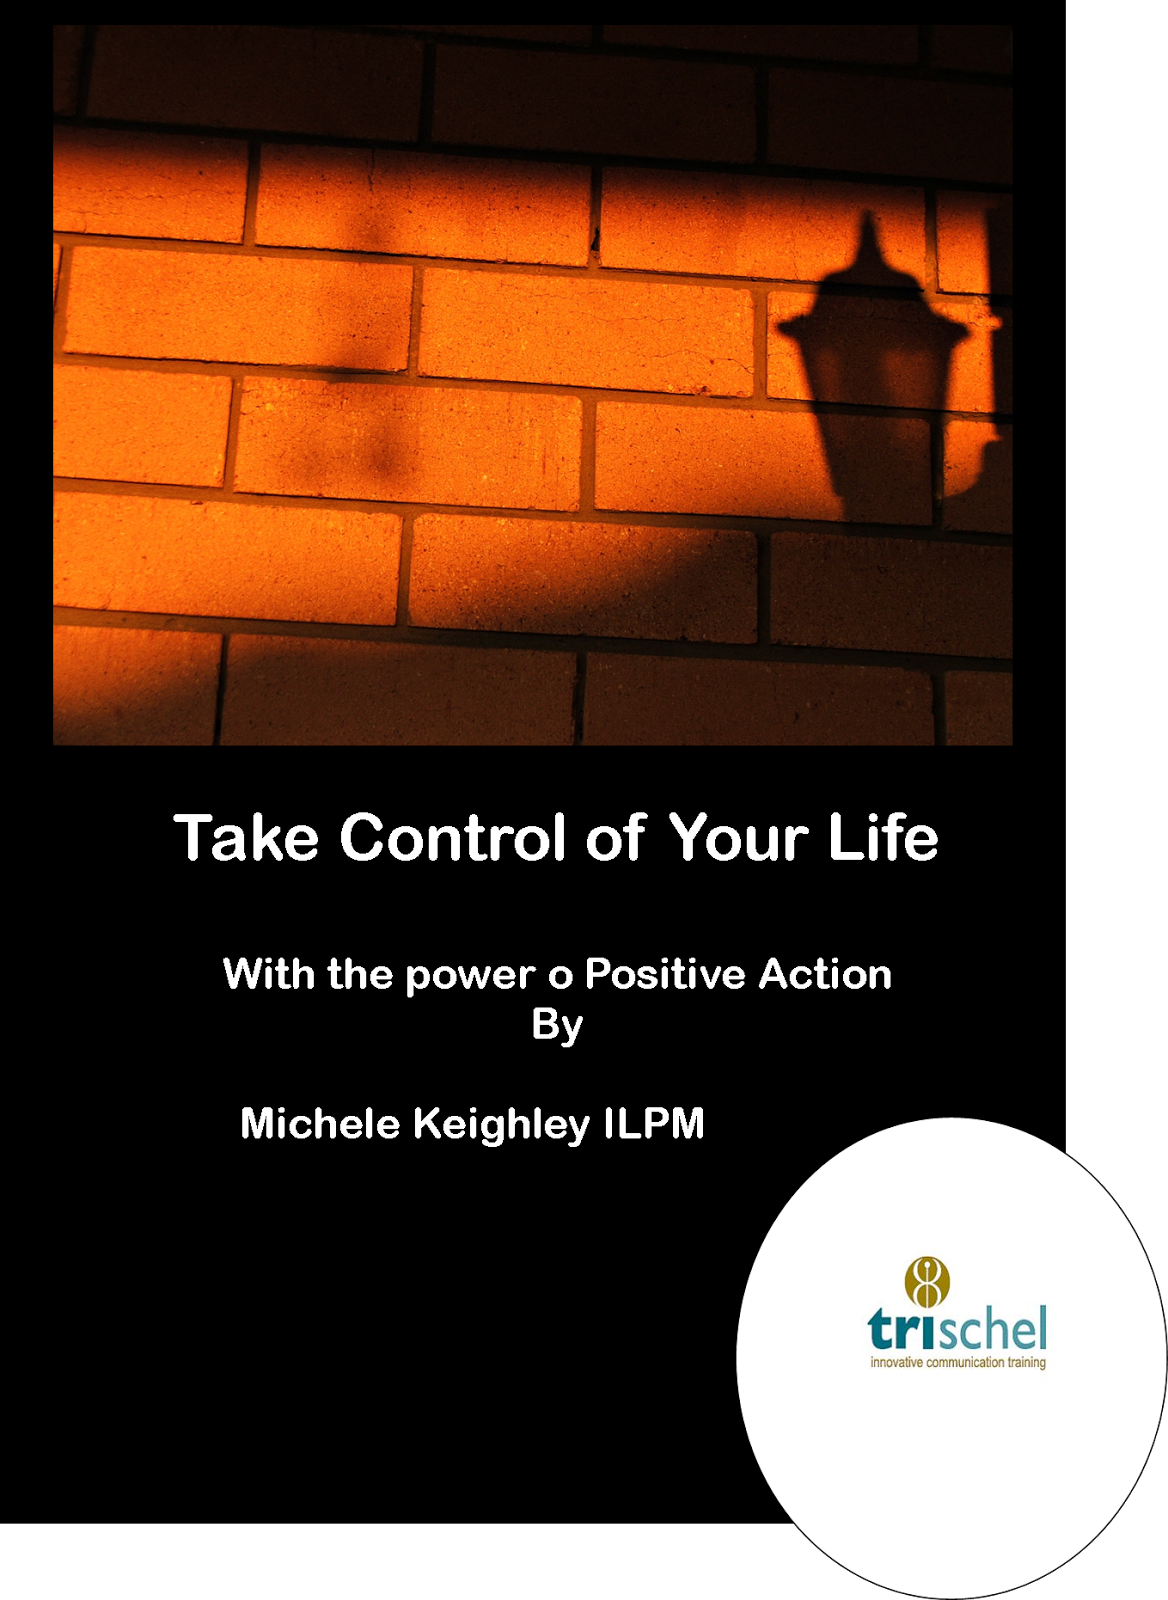 Take Control of Your Life - with the power of Positive Action